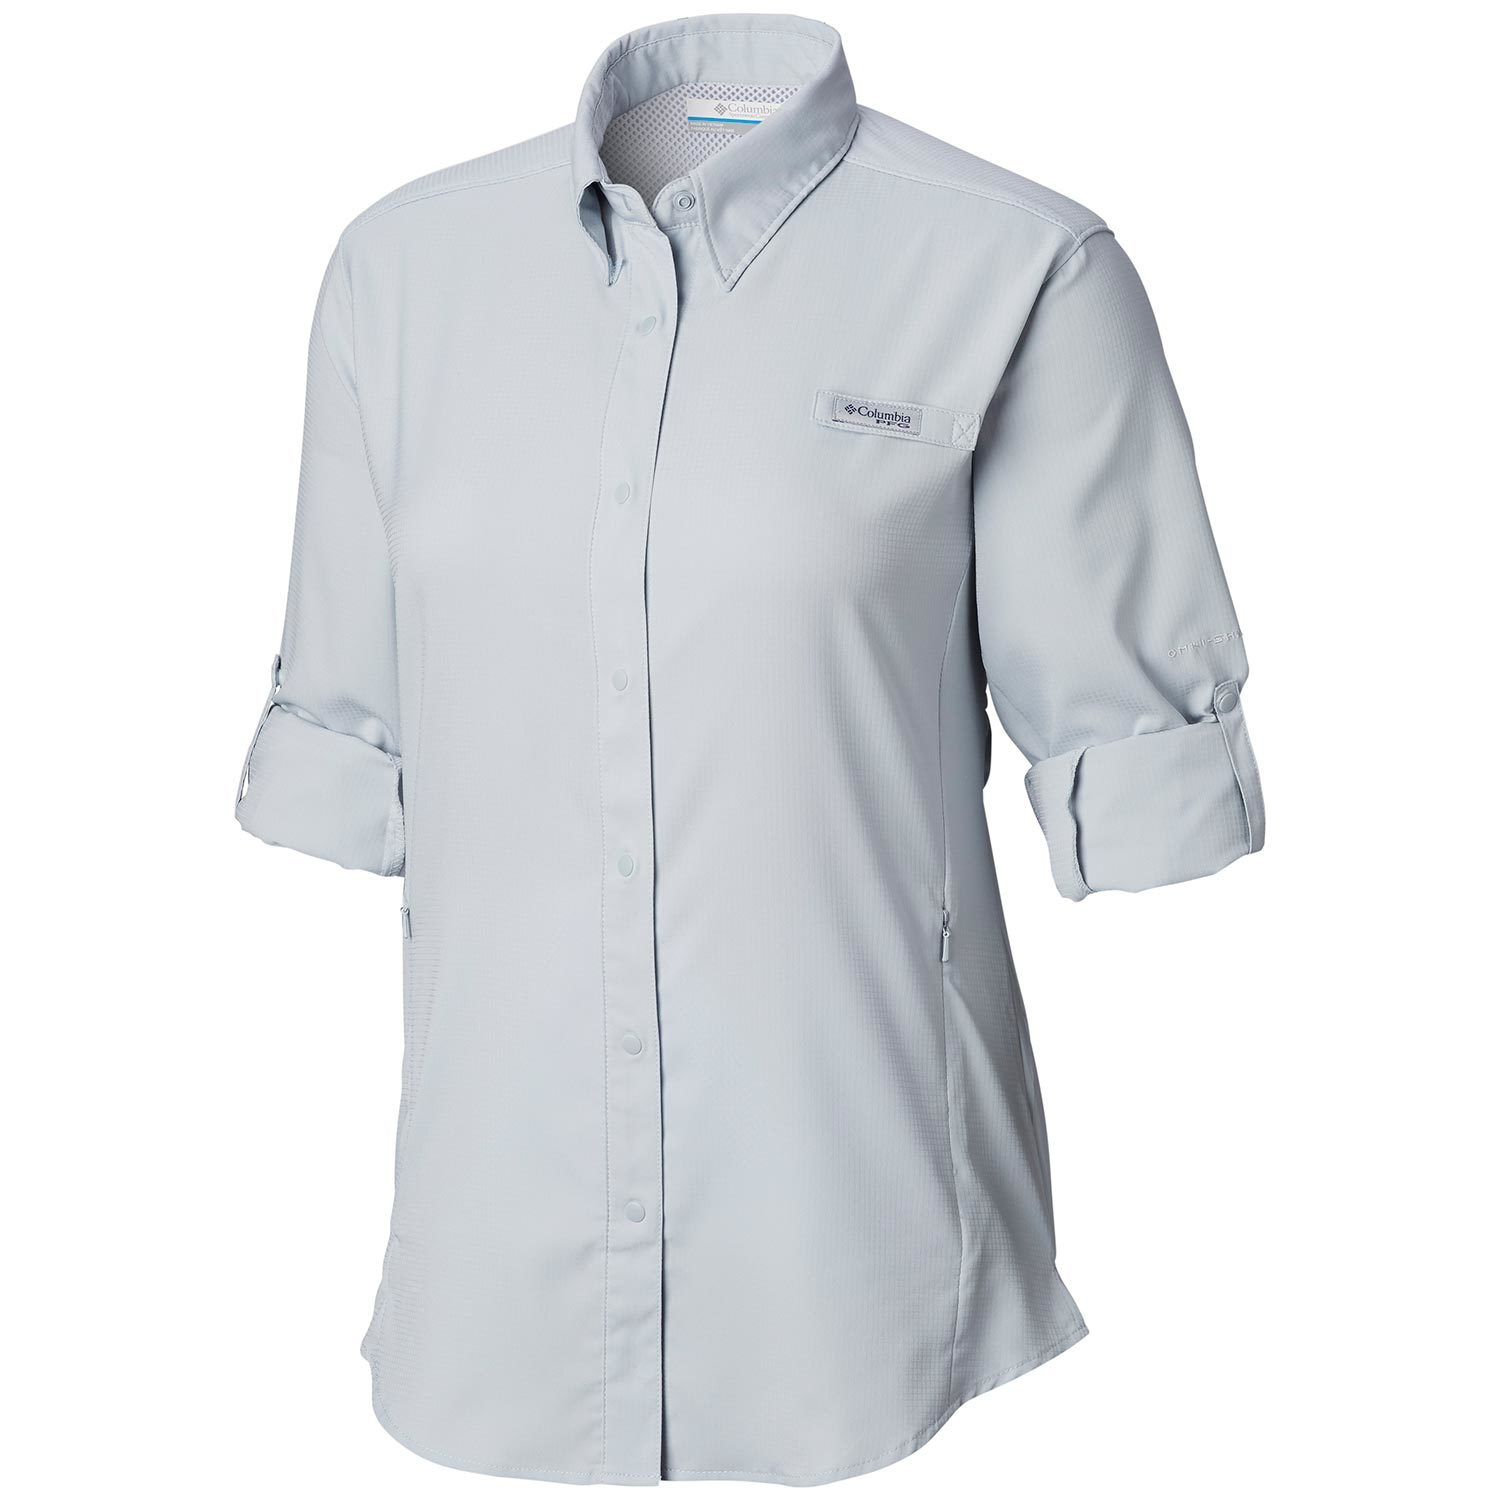 f71e78dfc Columbia Pfg Long Sleeve Shirt Review – Amahl-Masr